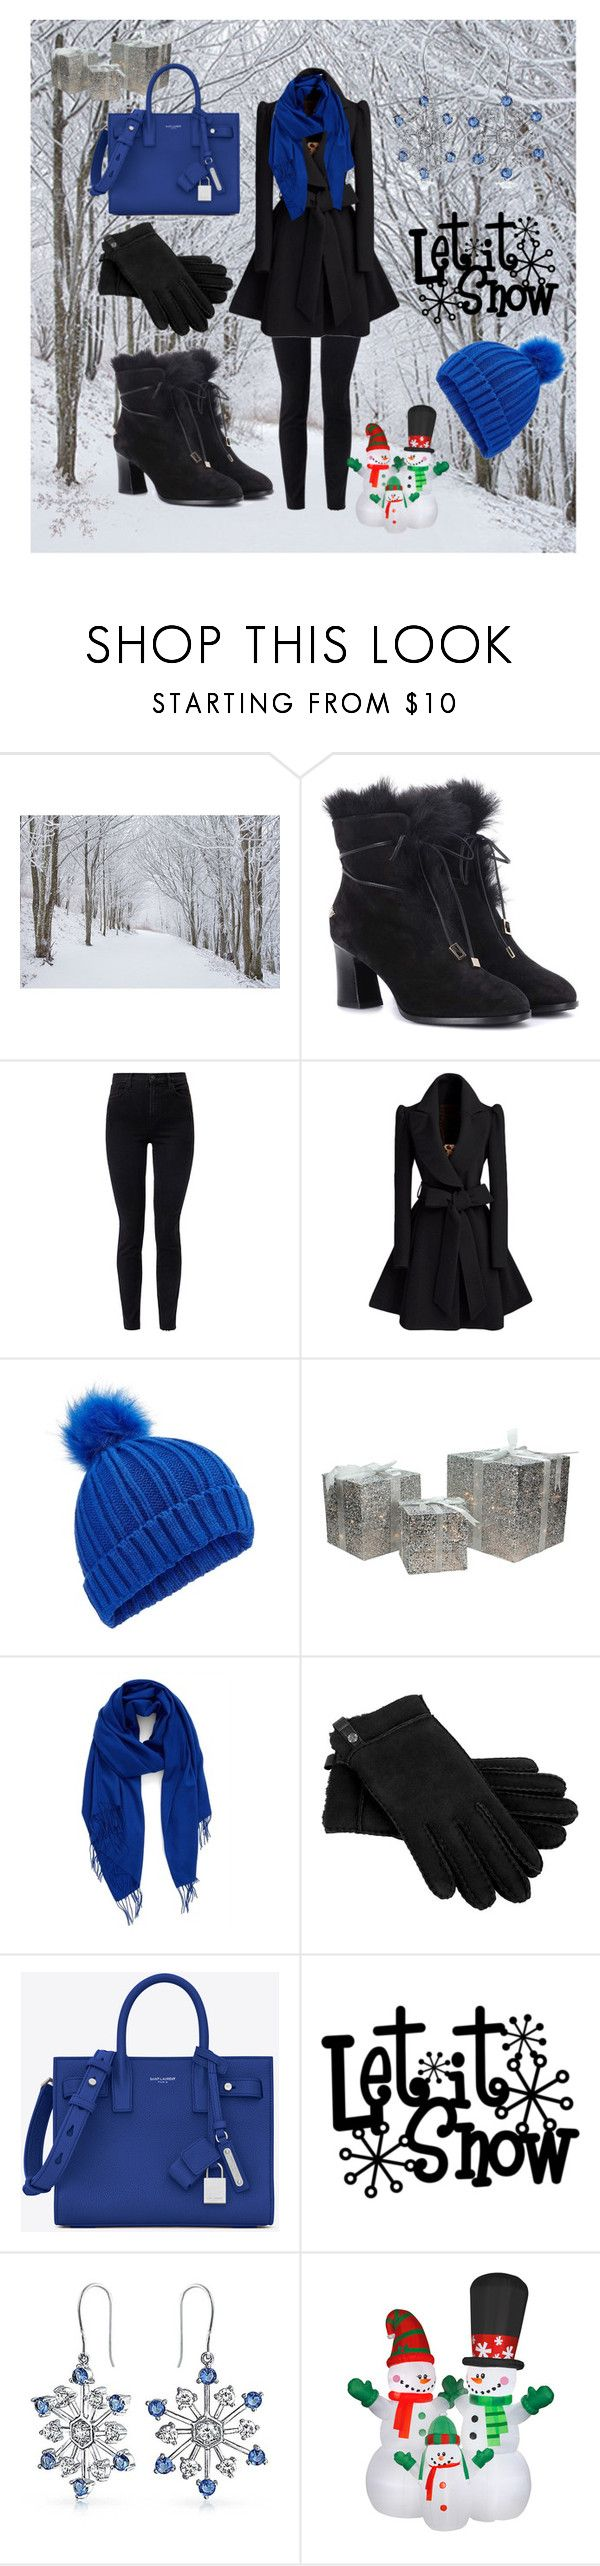 """""""Let it snow"""" by cecilvenekamp ❤ liked on Polyvore featuring J Brand, Miss Selfridge, Northlight Homestore, Nordstrom, UGG, Yves Saint Laurent, Bling Jewelry and National Tree Company"""